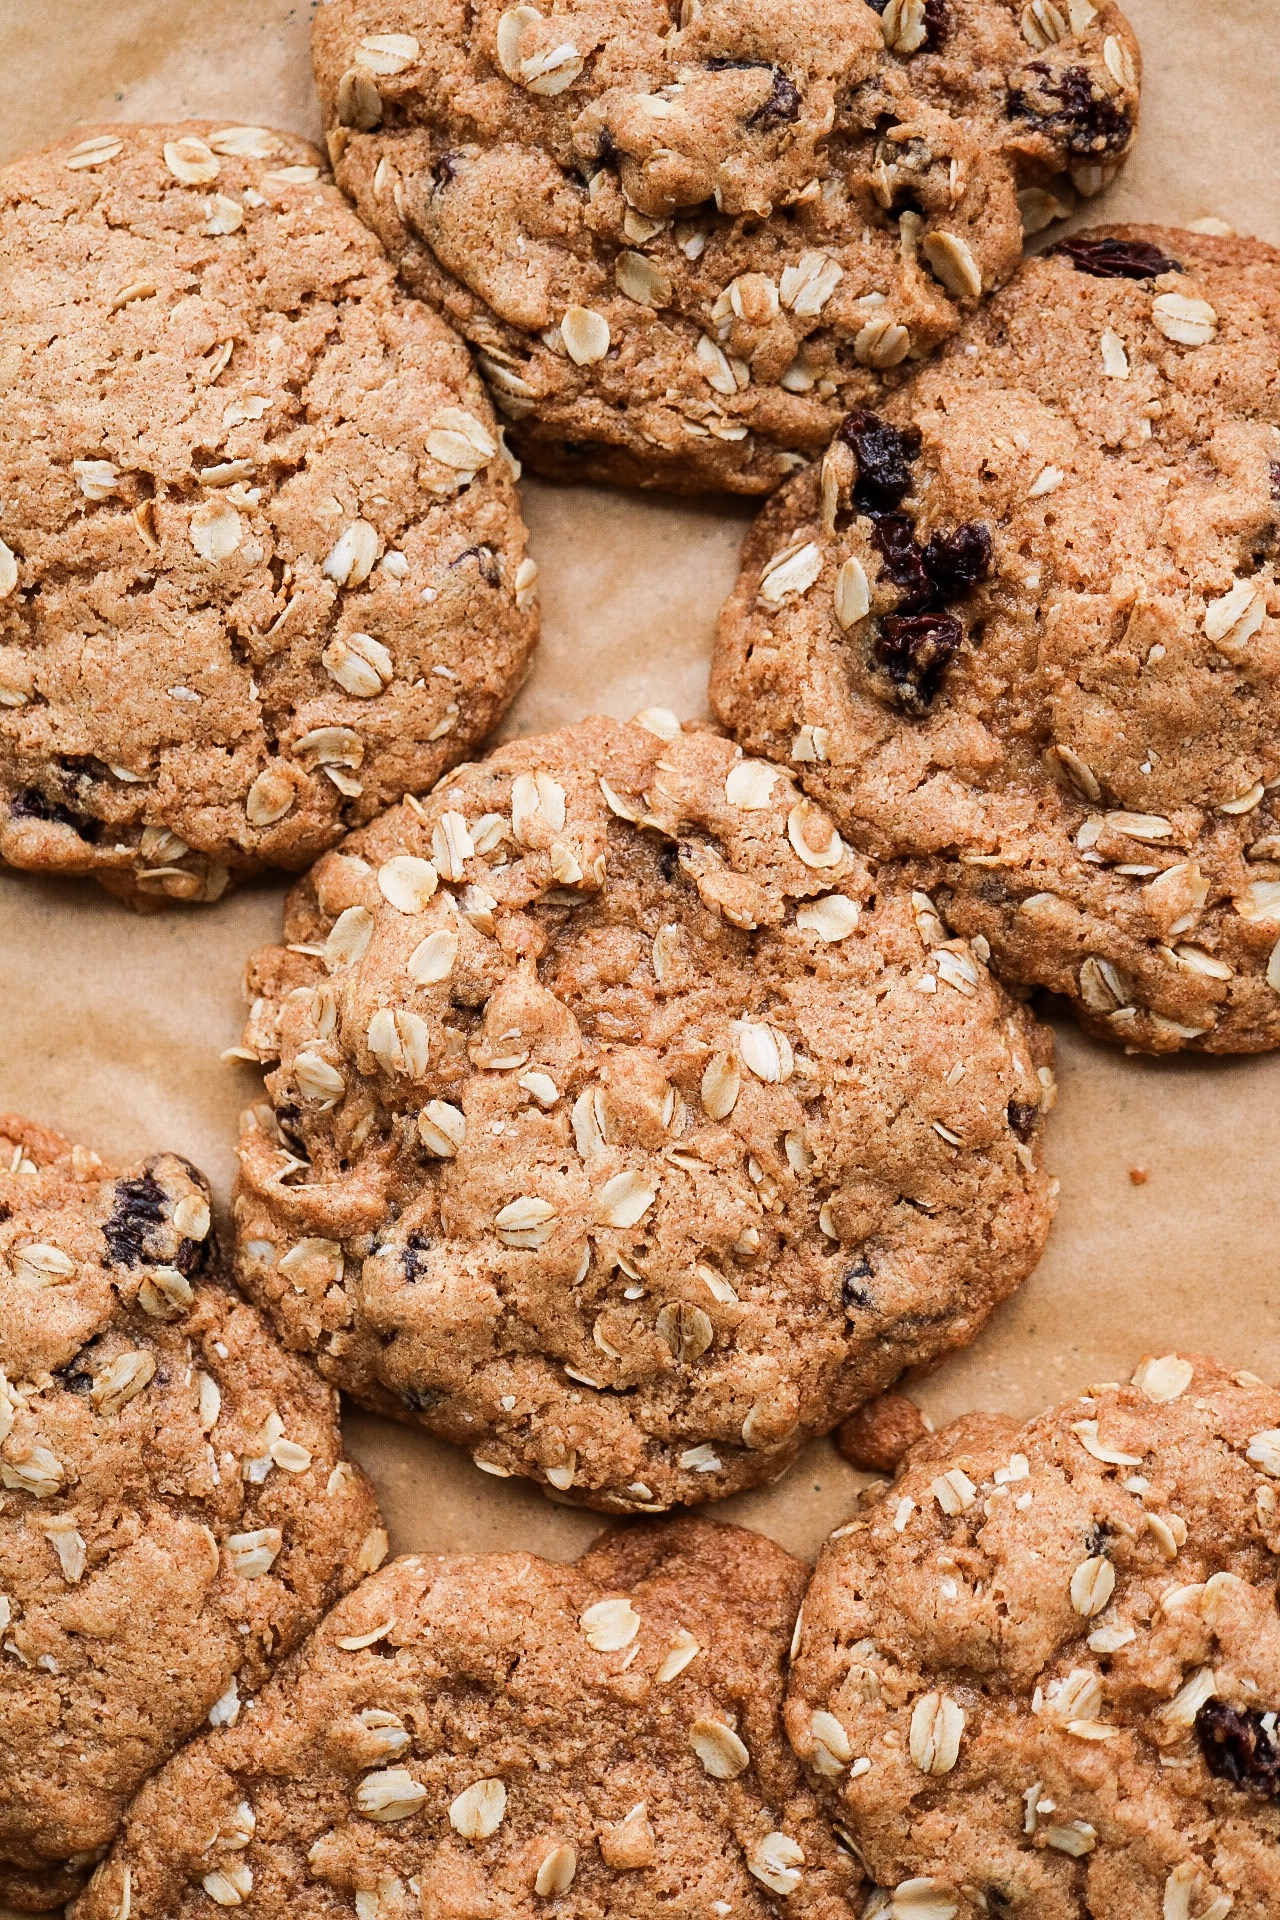 Oatmeal Walnut Raisin Cookies - INGREDIENTS:1 cup all purpose or spelt flour1/2 tsp baking powder1/4 tsp baking soda1/2 tsp salt1/2 tsp cinnamon1/3 cup melted coconut oil2/3 cup brown sugar1/4 cup warm water1/3 cup raisins1/2 cup rolled oats1/3 cup chopped walnutsINSTRUCTIONS:Preheat your oven to 350F. Line a baking sheet with parchment paper and set aside. In a medium bowl, whisk together the flour, baking soda, baking powder, salt, and cinnamon. In another bowl, mix together the sugar, oil, and water. Add the wet mixture to the dry, and fold in your raisins, walnuts, and oats. Roll out your cookie dough balls with a tablespoon, and place them on your baking sheet. Bake for 12-13 minutes!